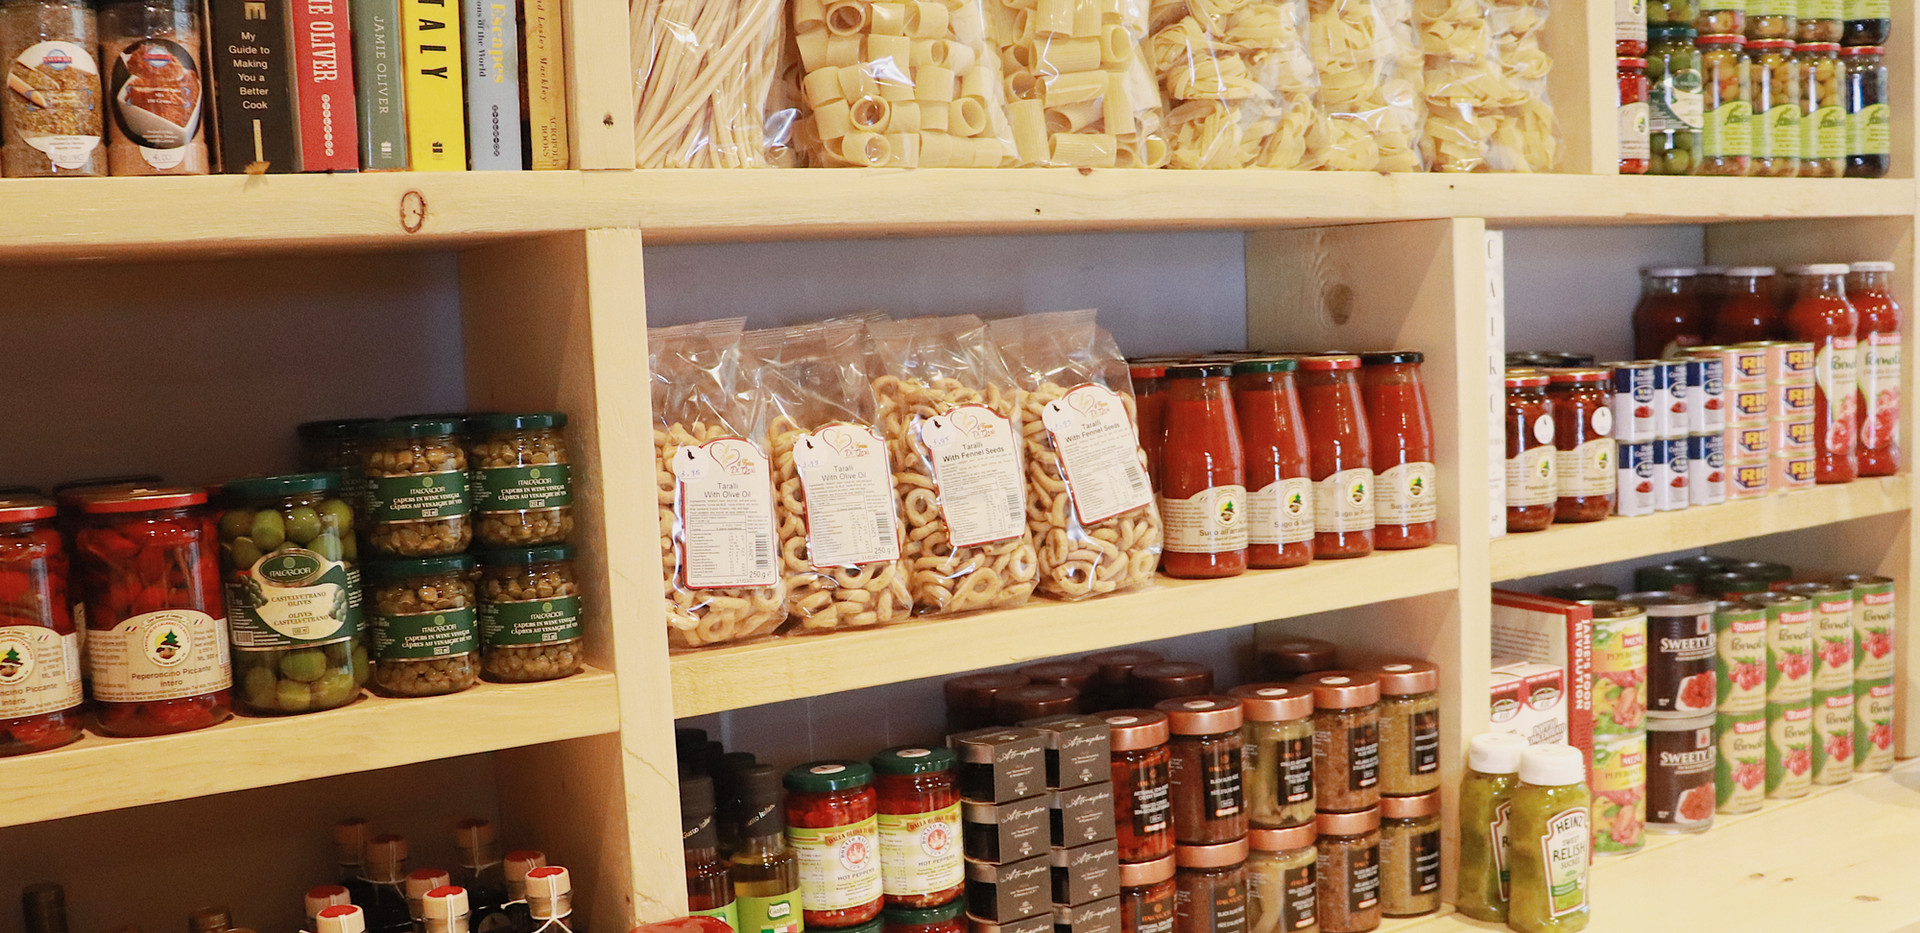 Dry goods and preserves